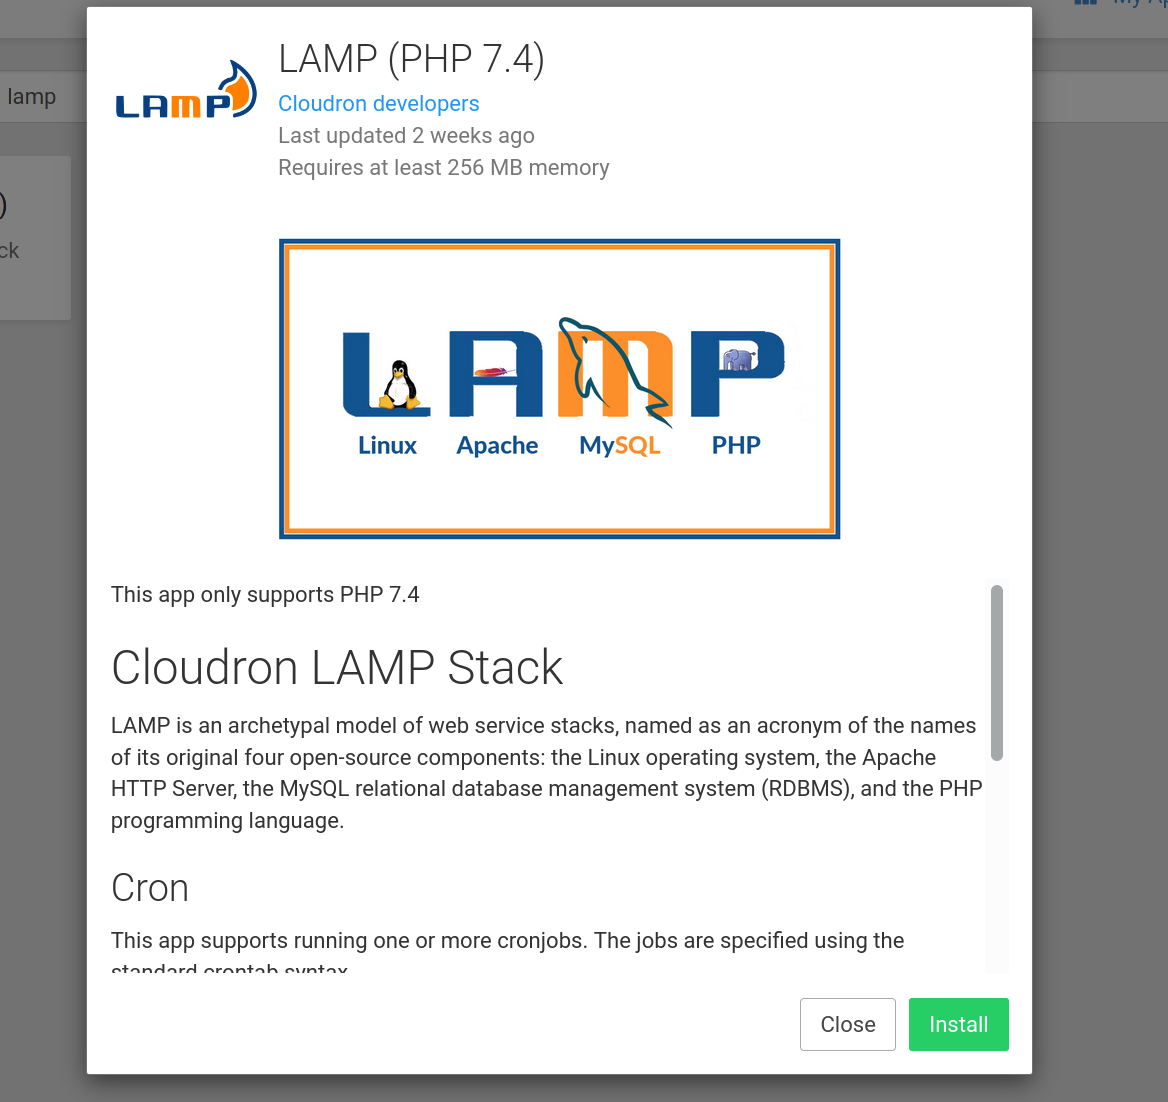 Screenshot of the LAMP app in the Cloudron app store